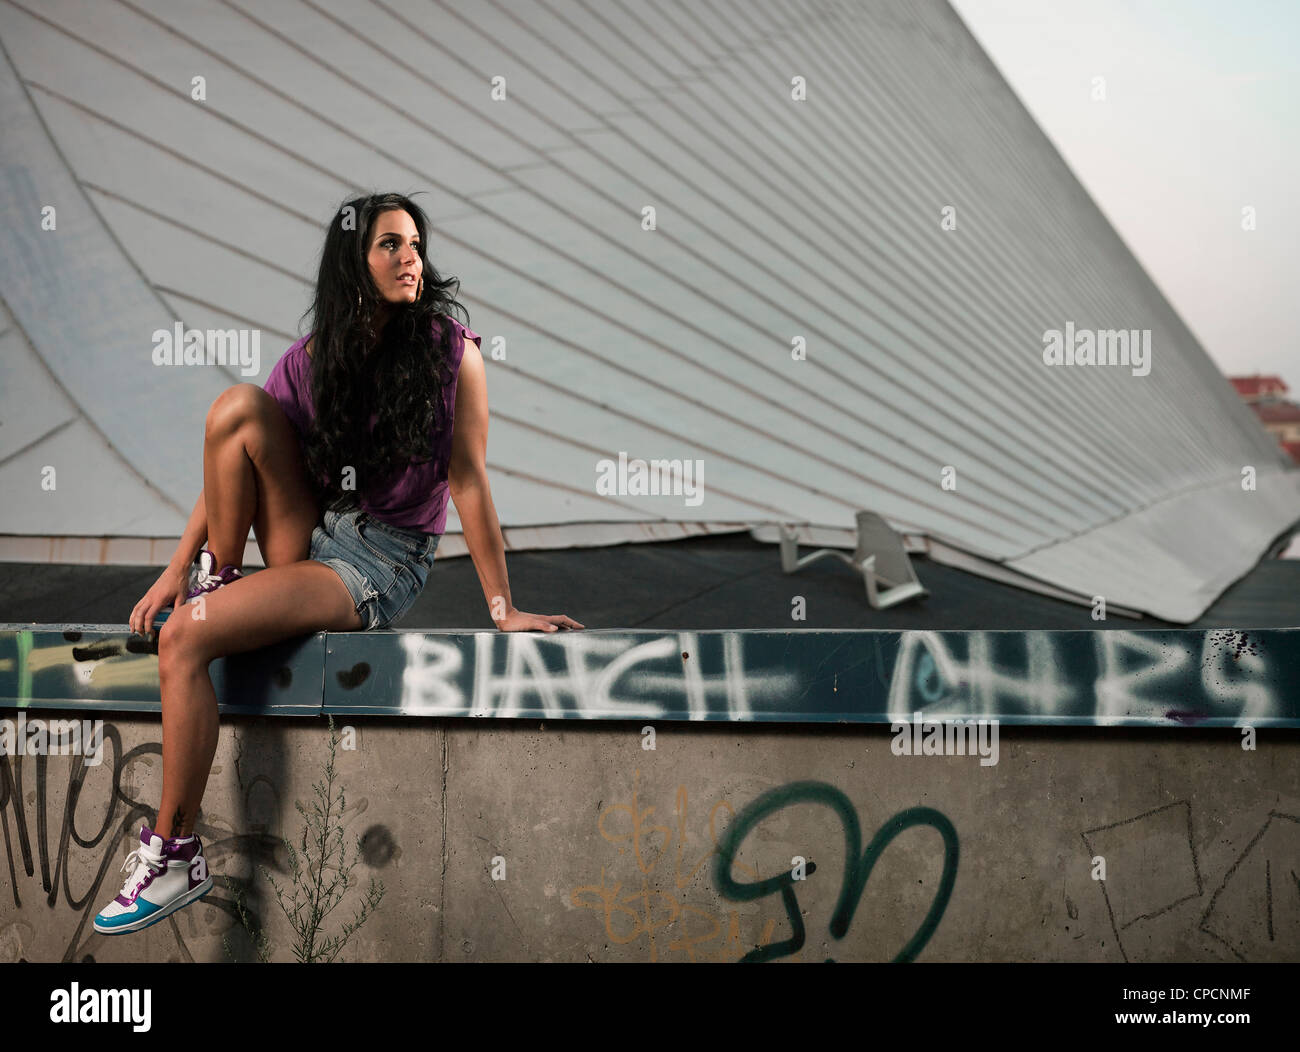 Woman sitting on gratified wall - Stock Image